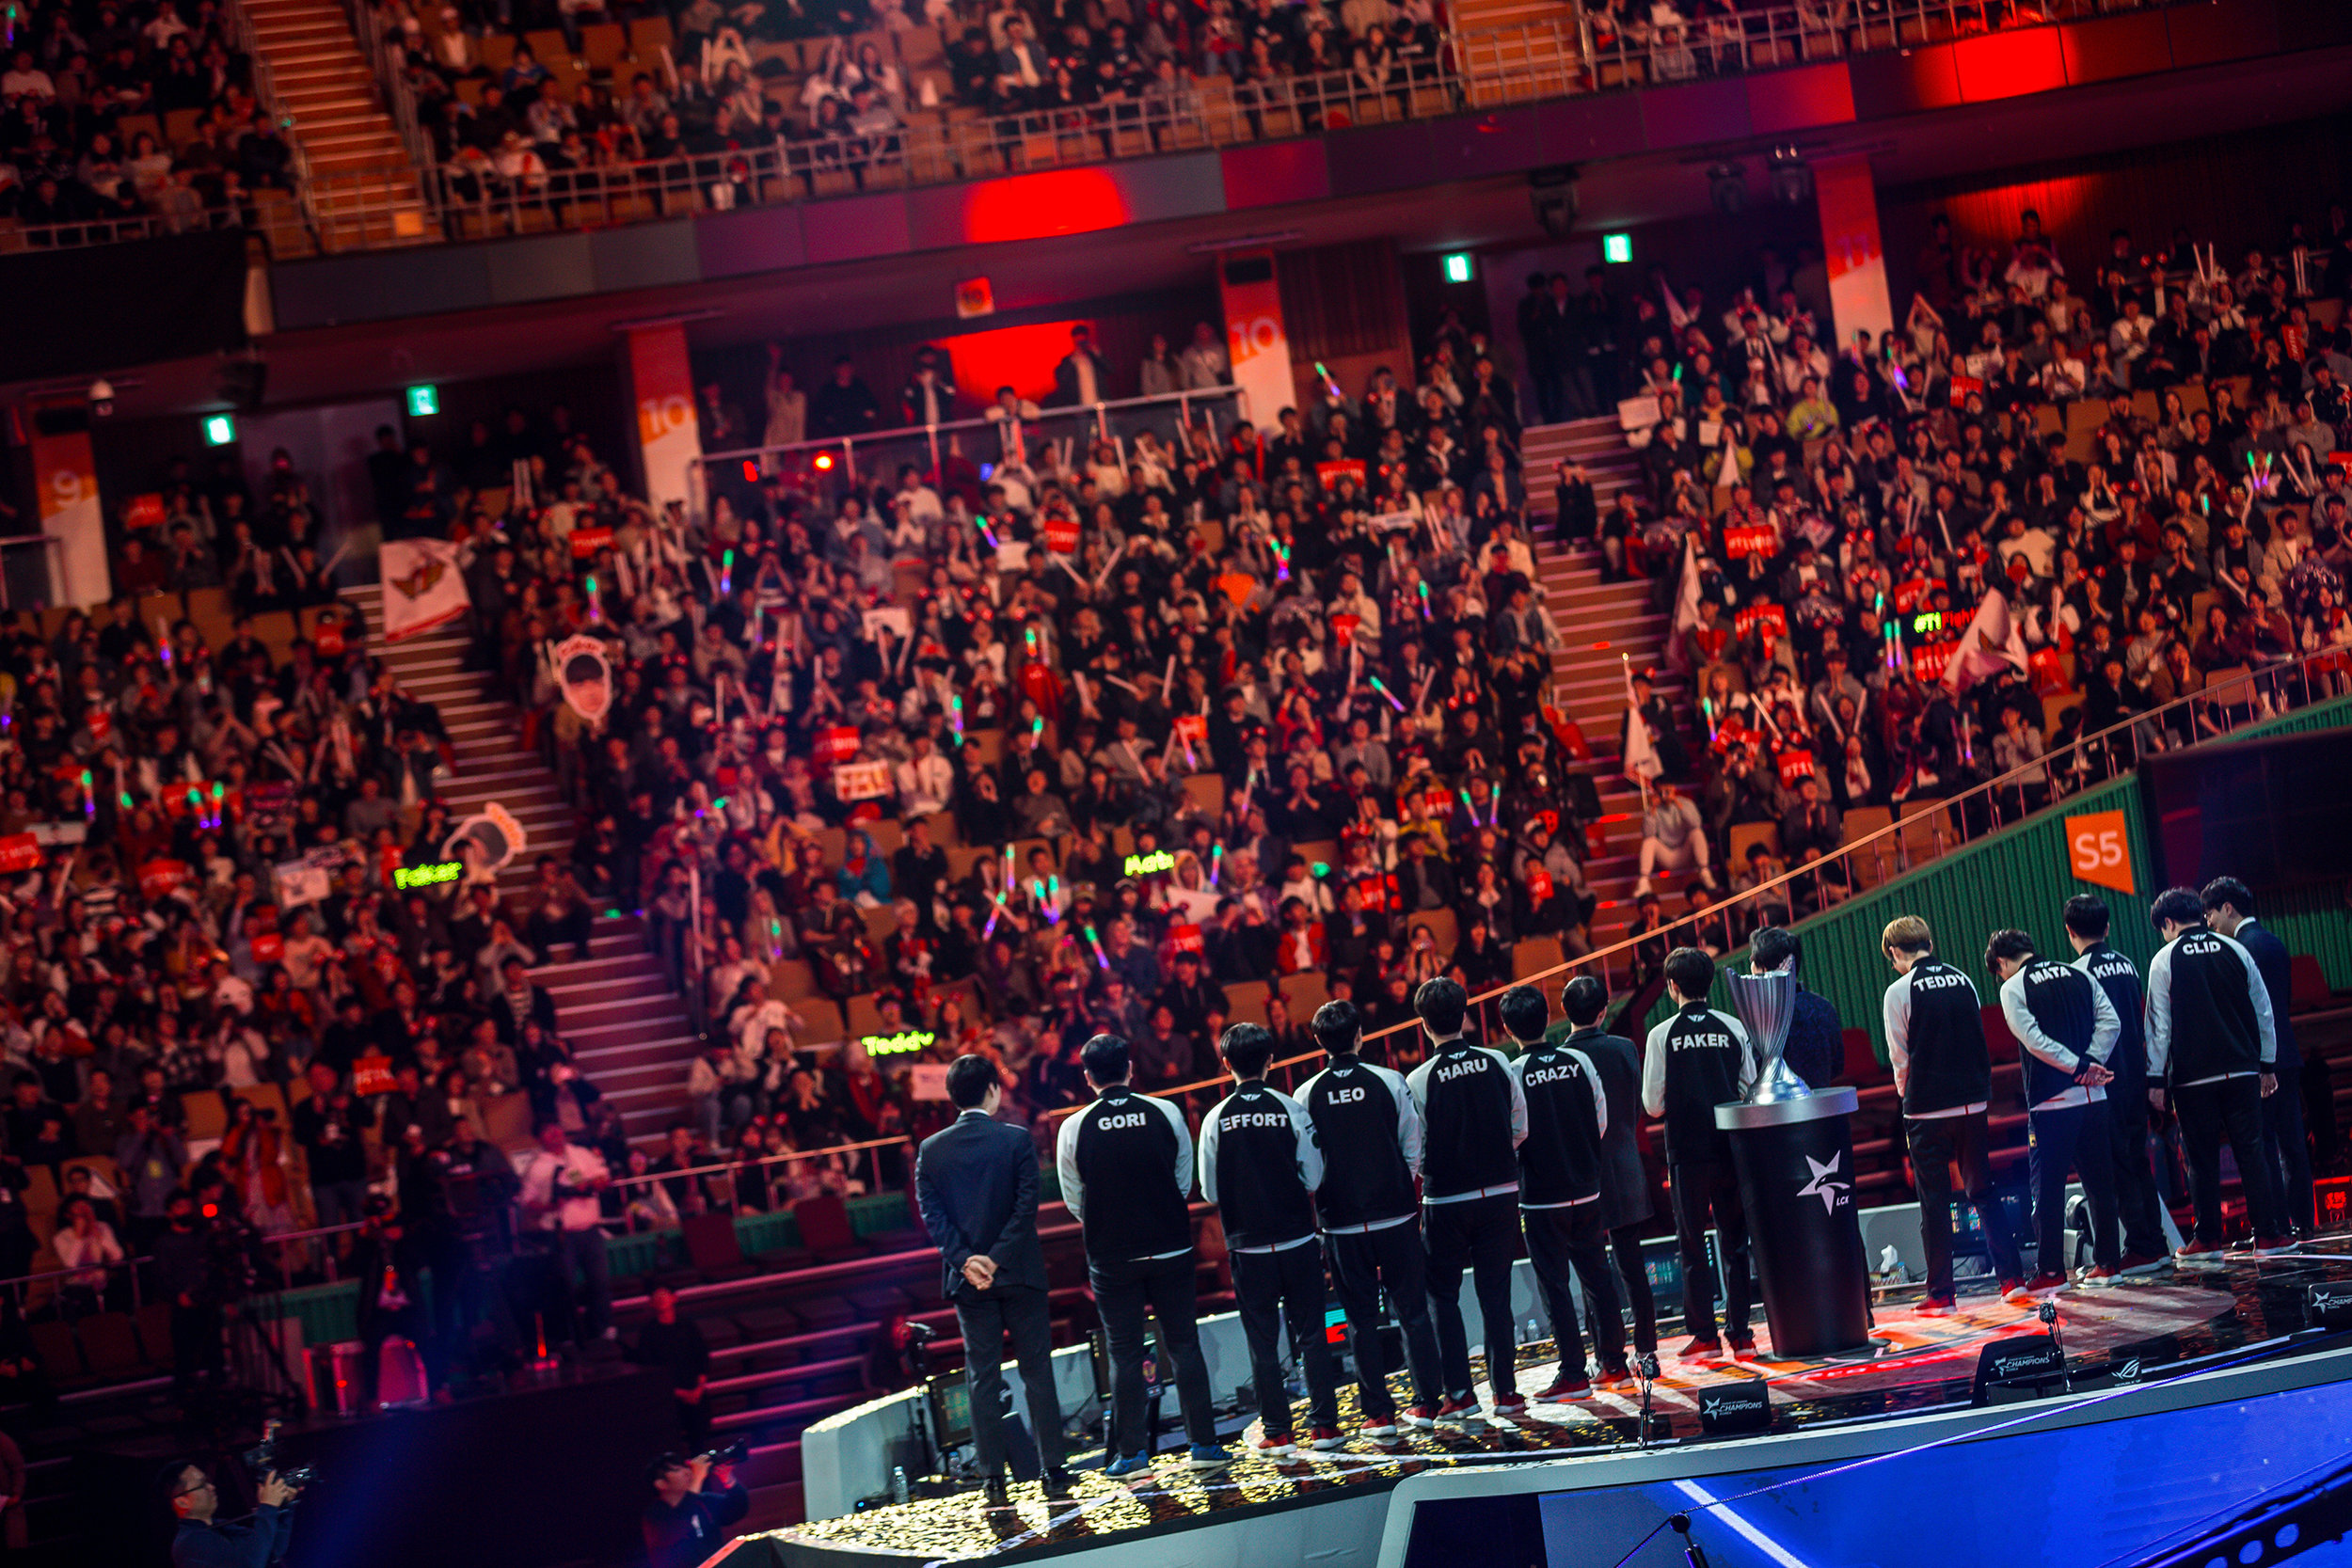 SEOUL, SOUTH KOREA - APRIL 13: Team addressing crowd on stage. SK Telecom T1 wins 3-0 over Griffin at LCK Spring Finals at Jamsil Sports Center on April 13, 2019 in Seoul, Korea. Photo by Timo Verdeil/ESPAT Media